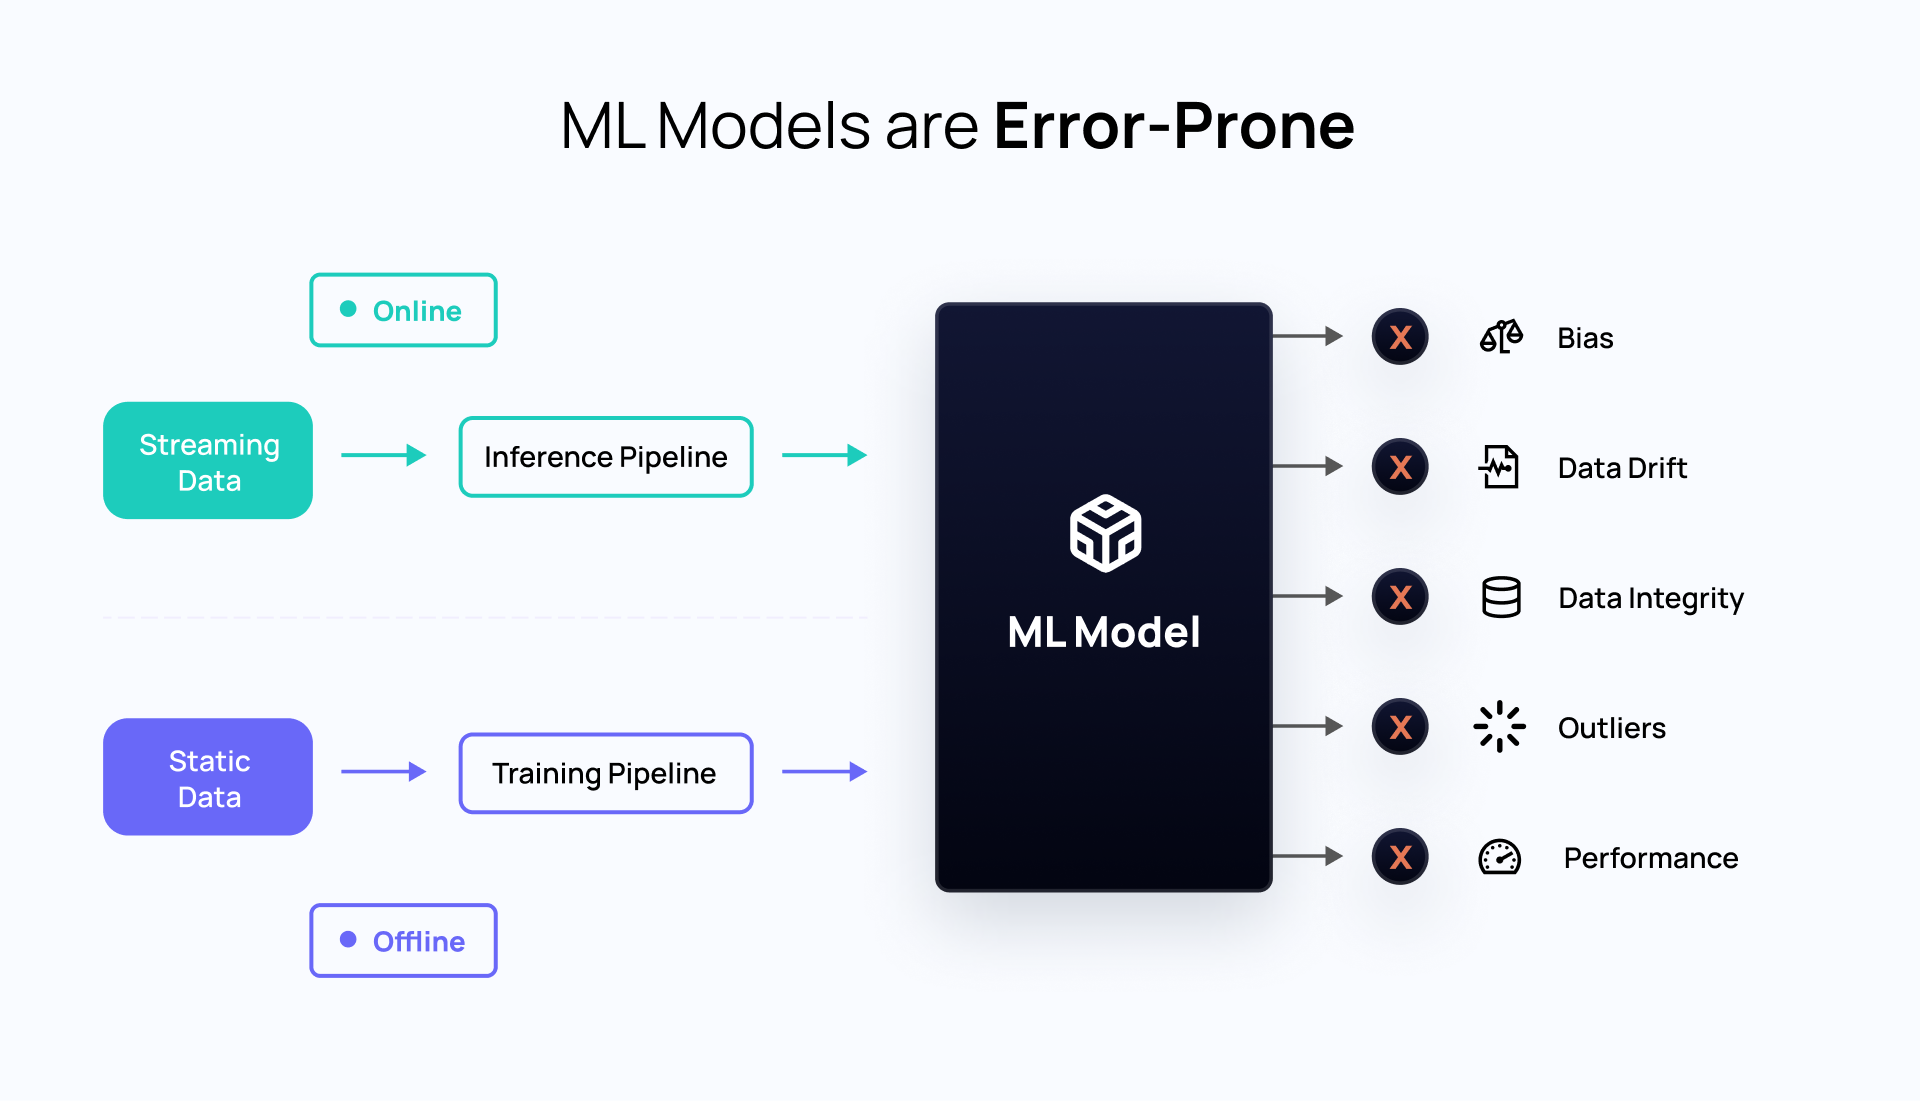 ML Models are naturally prone to error. The difference in offline and online data flow makes a machine learning model face challenges like bias, data drift, data integrity, outliers, and performance issues.